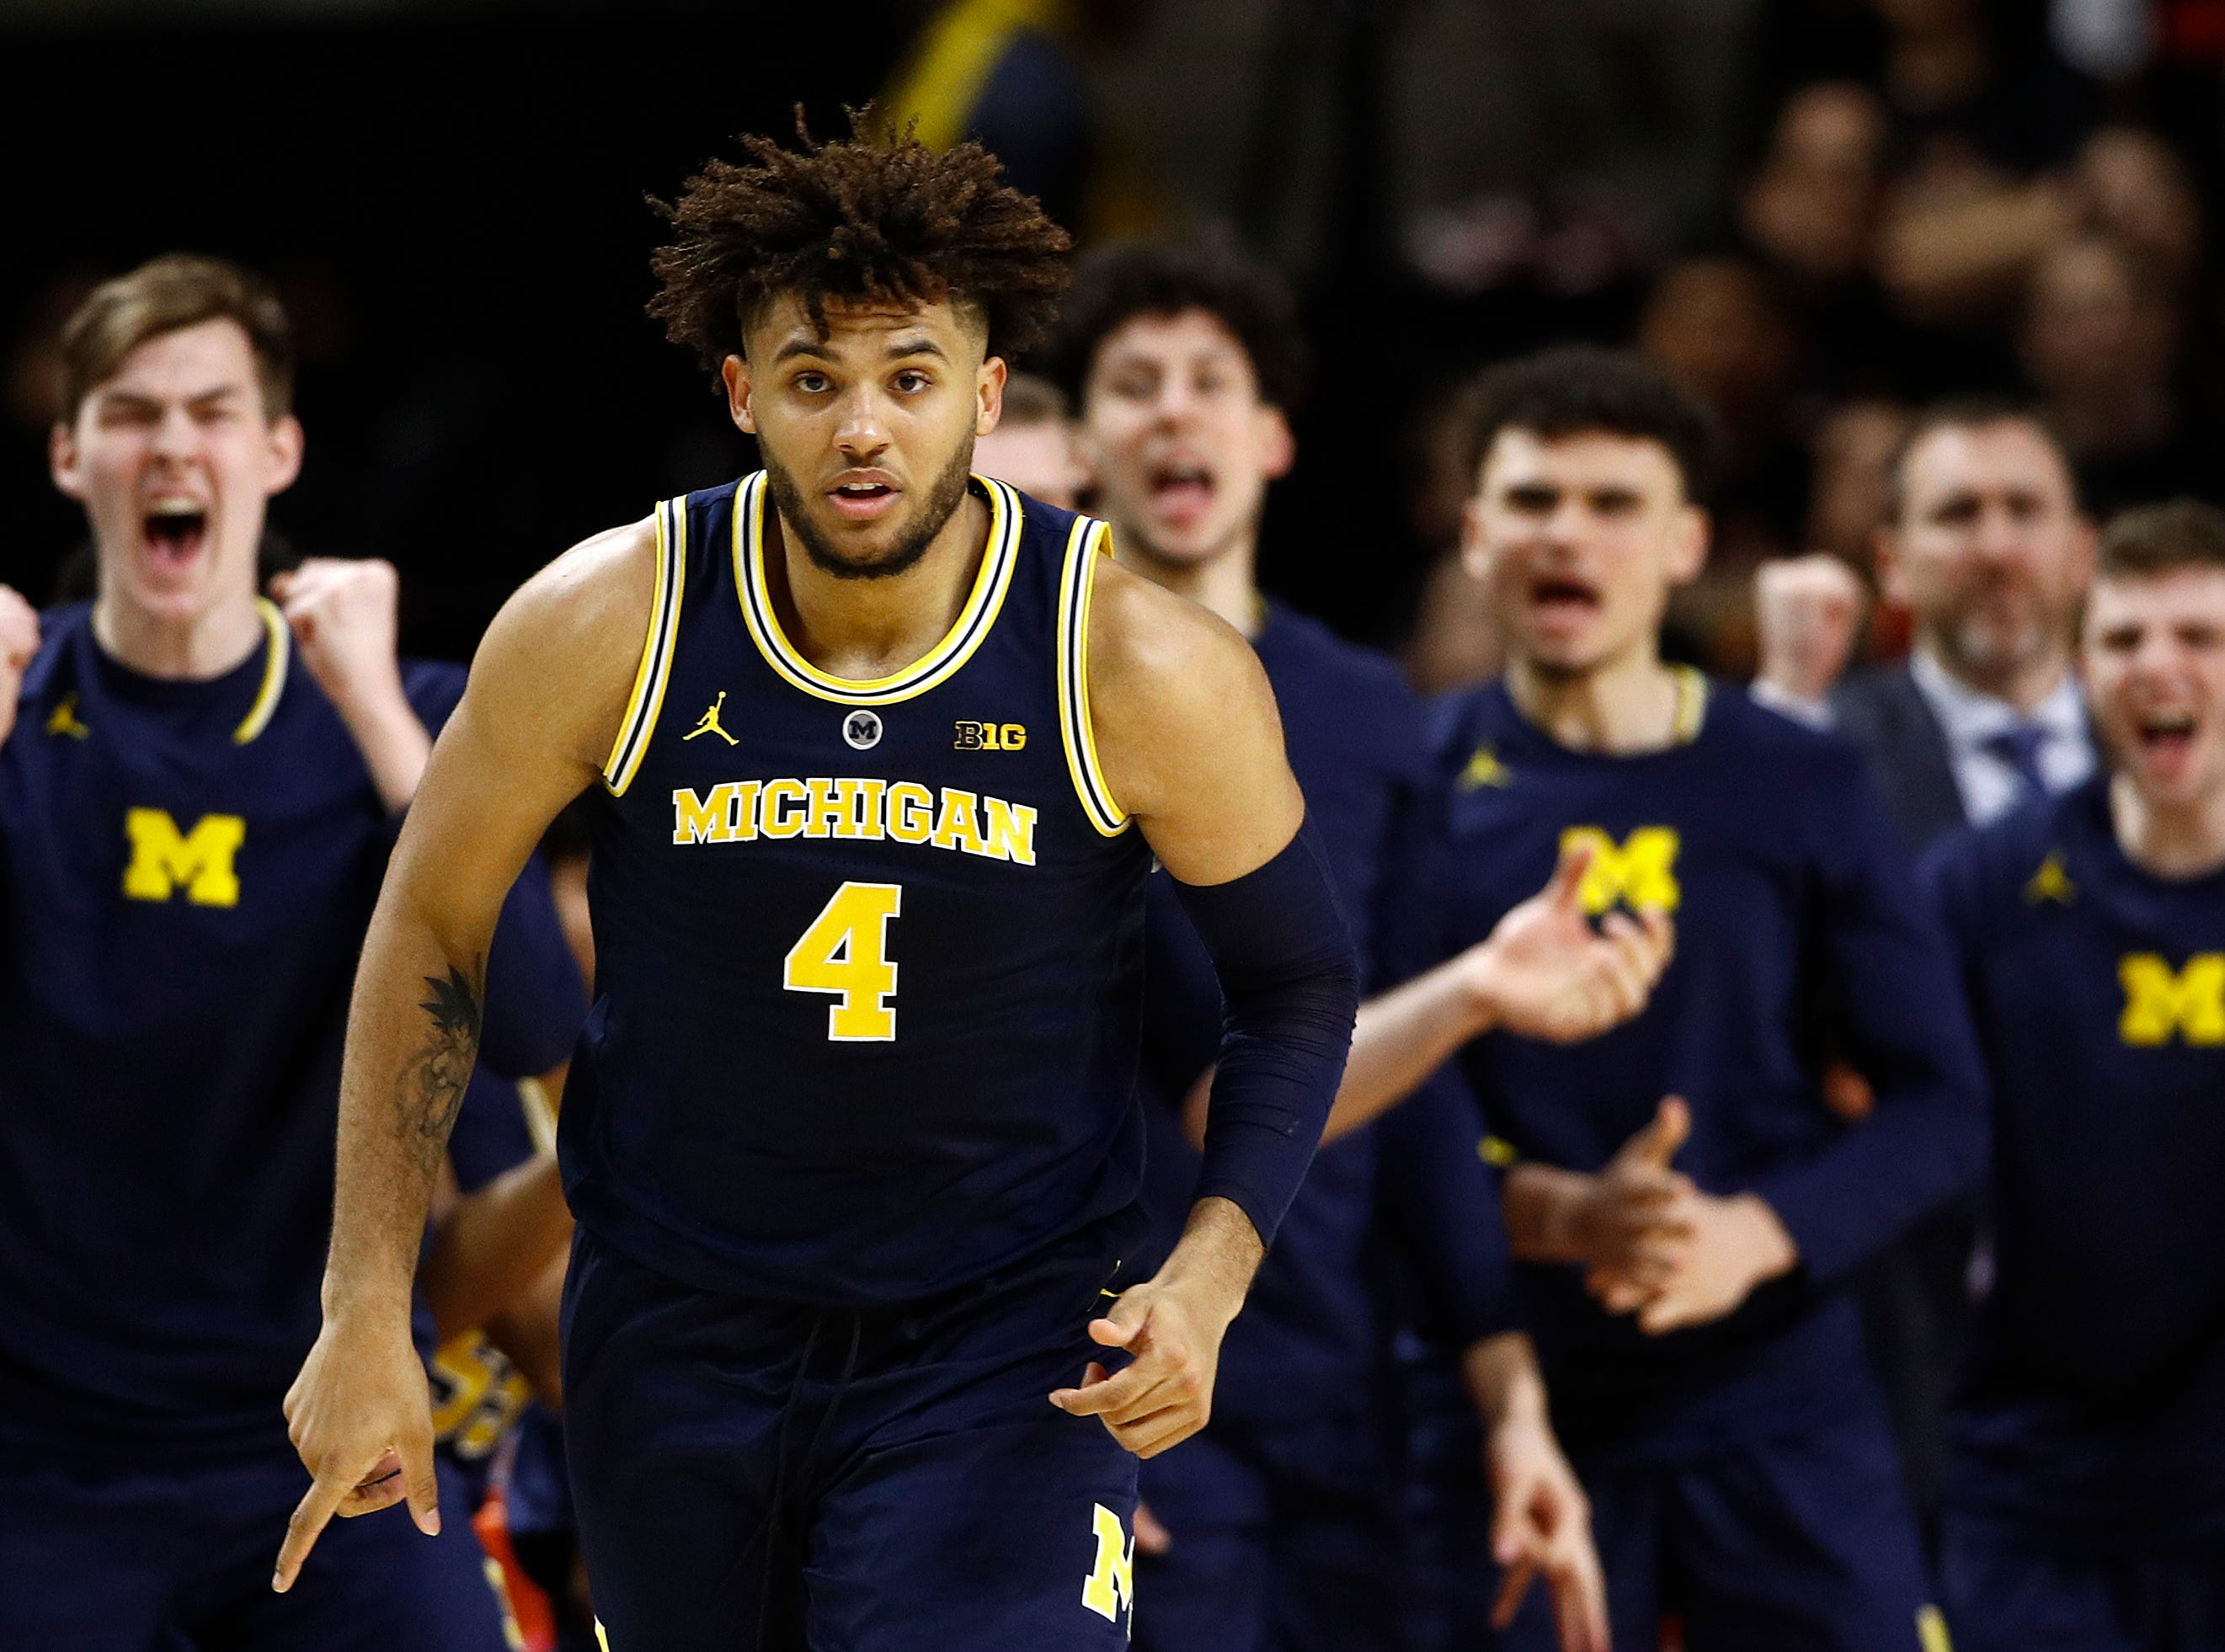 Michigan forward Isaiah Livers (4) reacts in front of teammates on the bench after making a three-point basket in the second half.